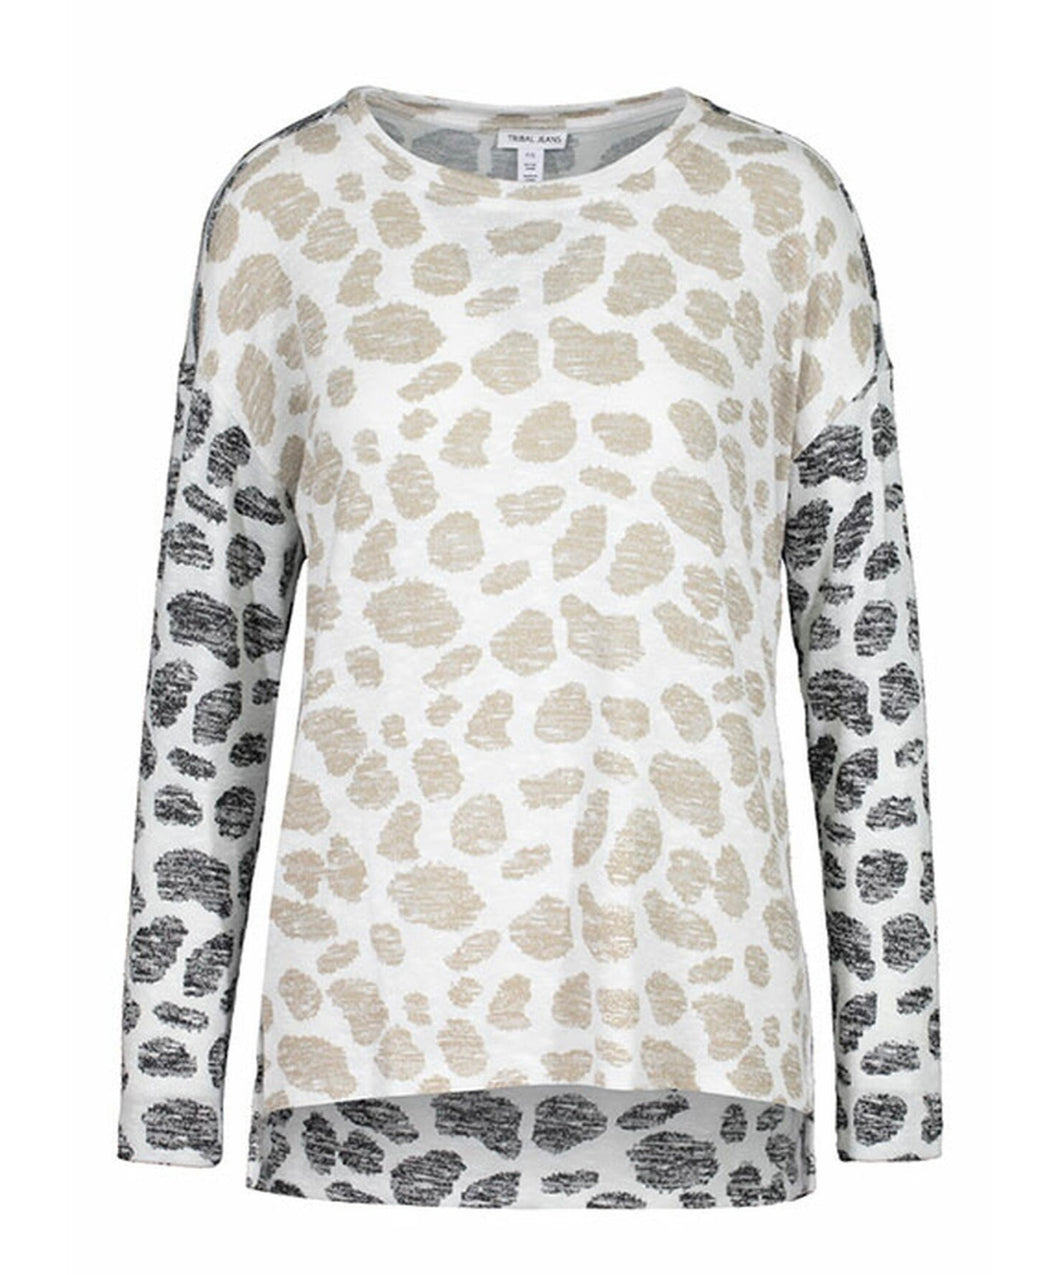 Tribal - Long Sleeve Light Weight Brown & Cashew Animal Print